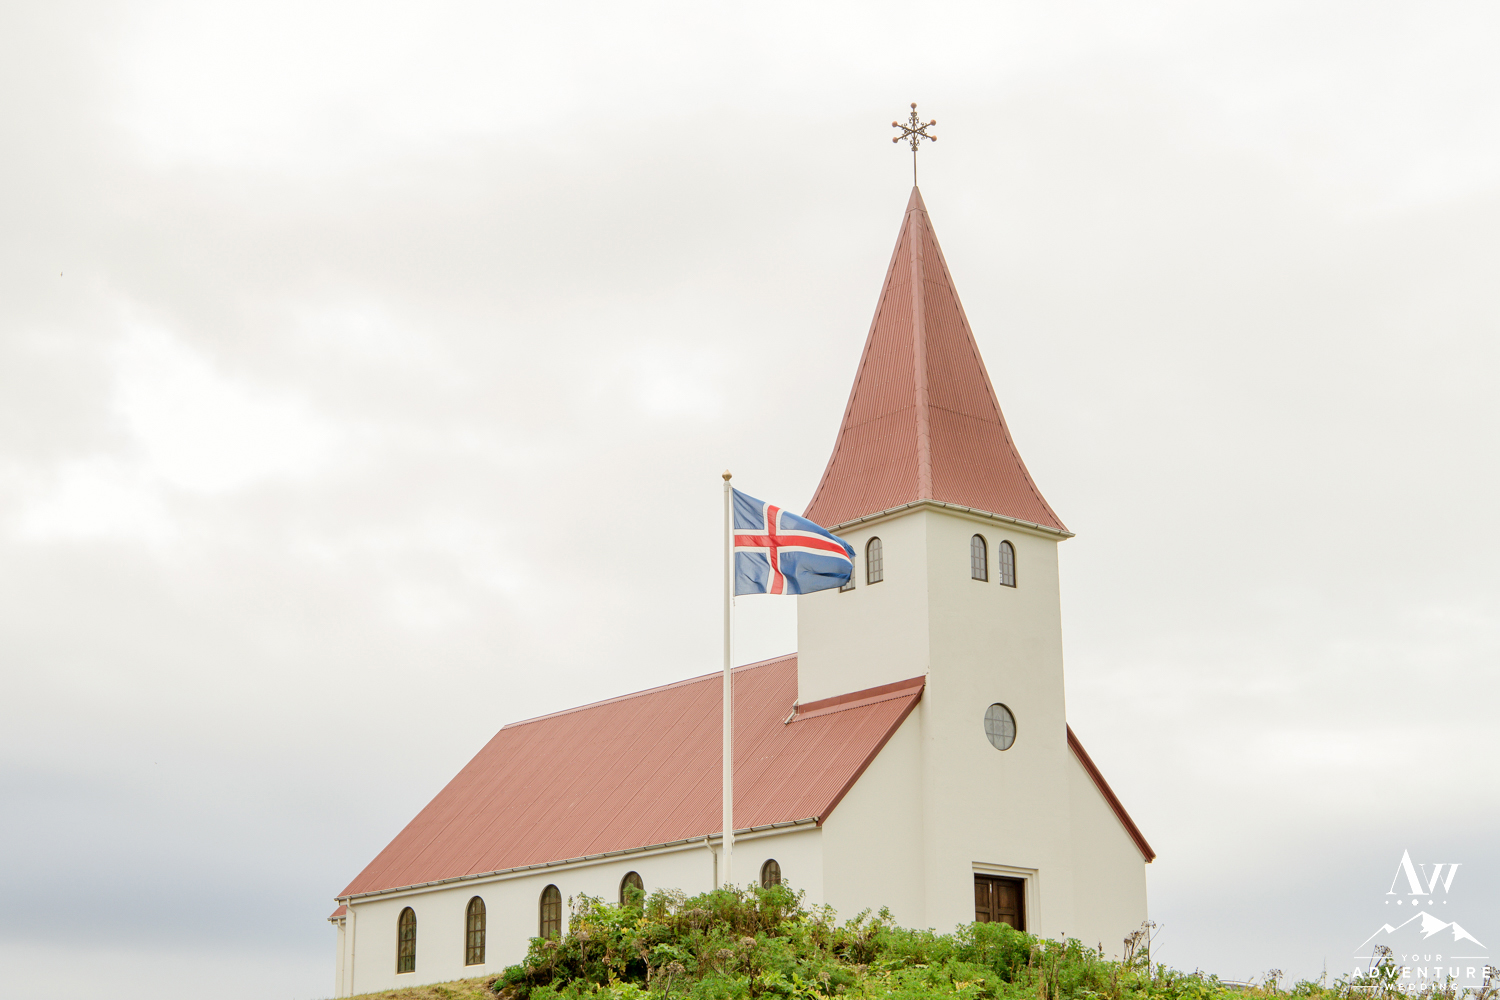 vik-iceland-hilltop-church-wedding-your-adventure-wedding